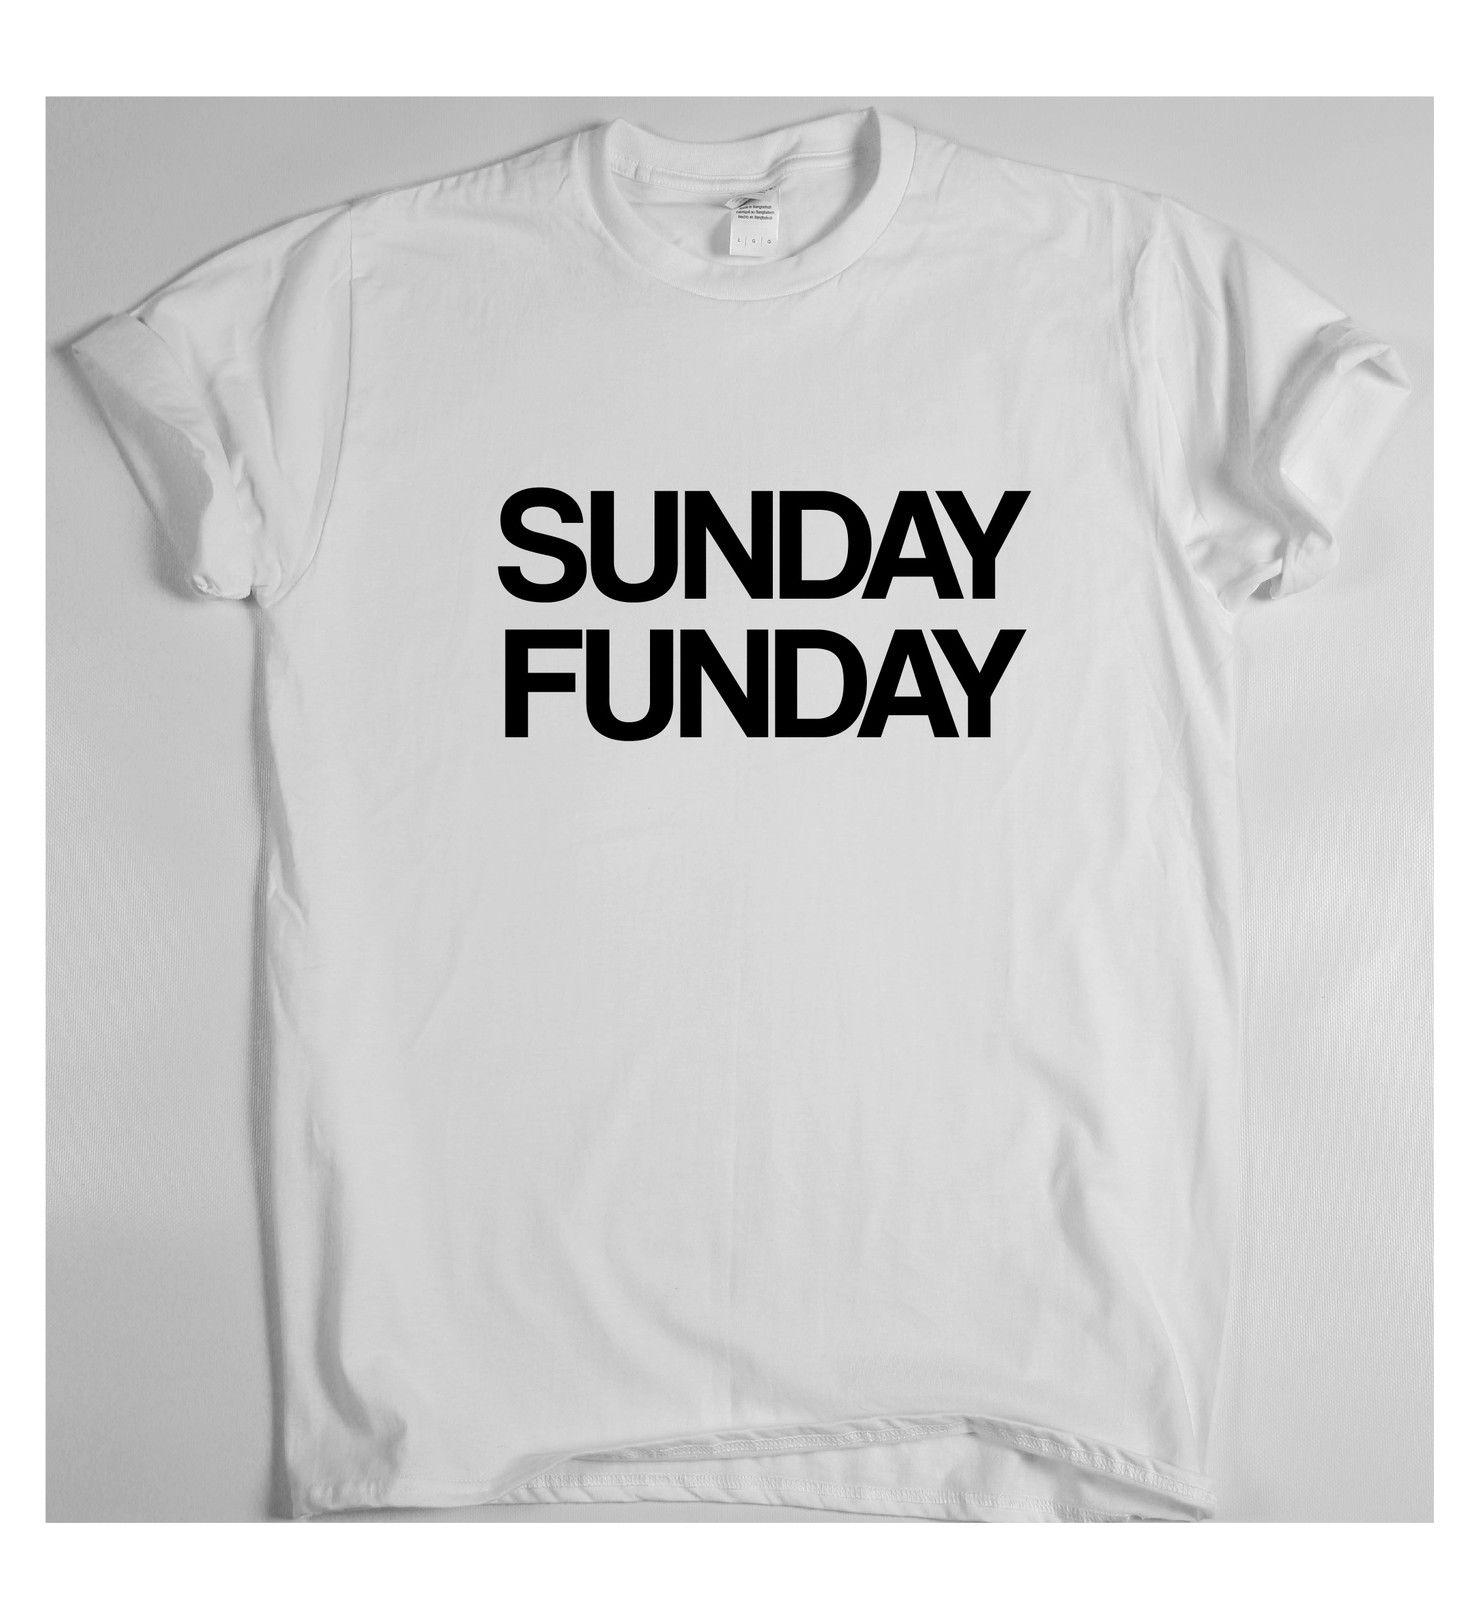 067bf2e0f SUNDAY FUNDAY T Shirt Mens Womens Sun Holiday Music Tee Humour Relax Funny  Hipster O Neck Casual Short Sleeve Tees Men Hot Cheap Awesome T Shirt  Designs Tea ...